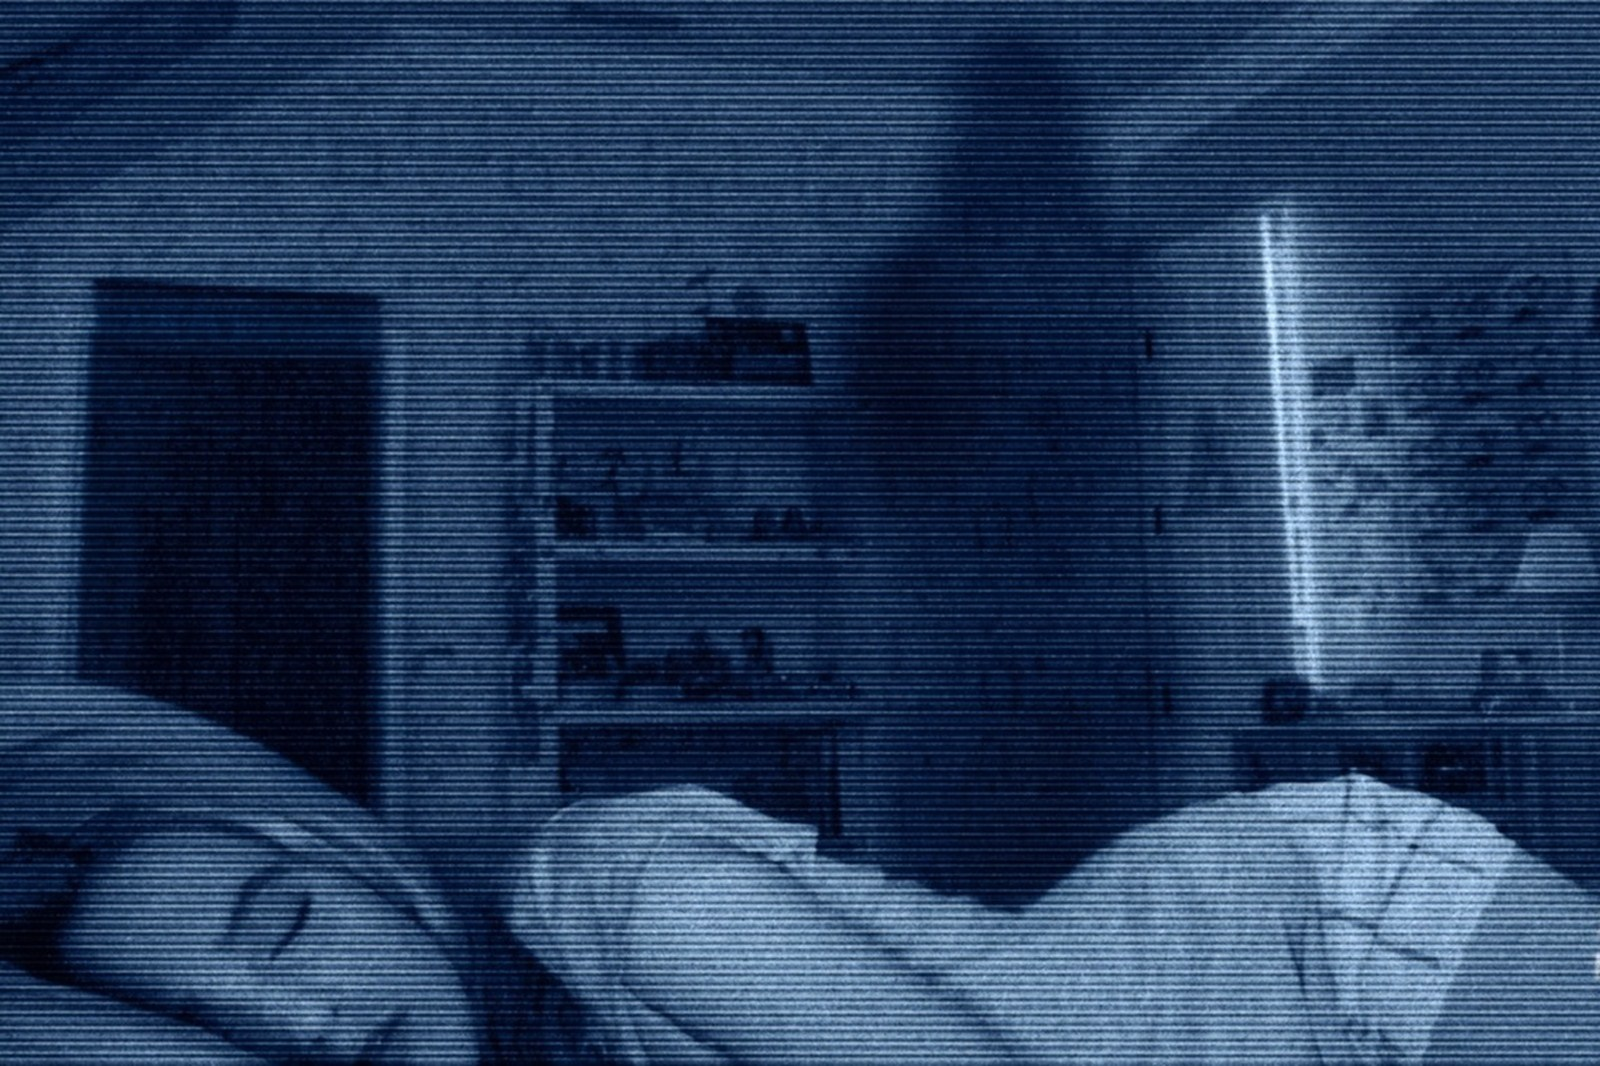 Thót tim với trailer 'Paranormal Activity: Ghost Dimension'